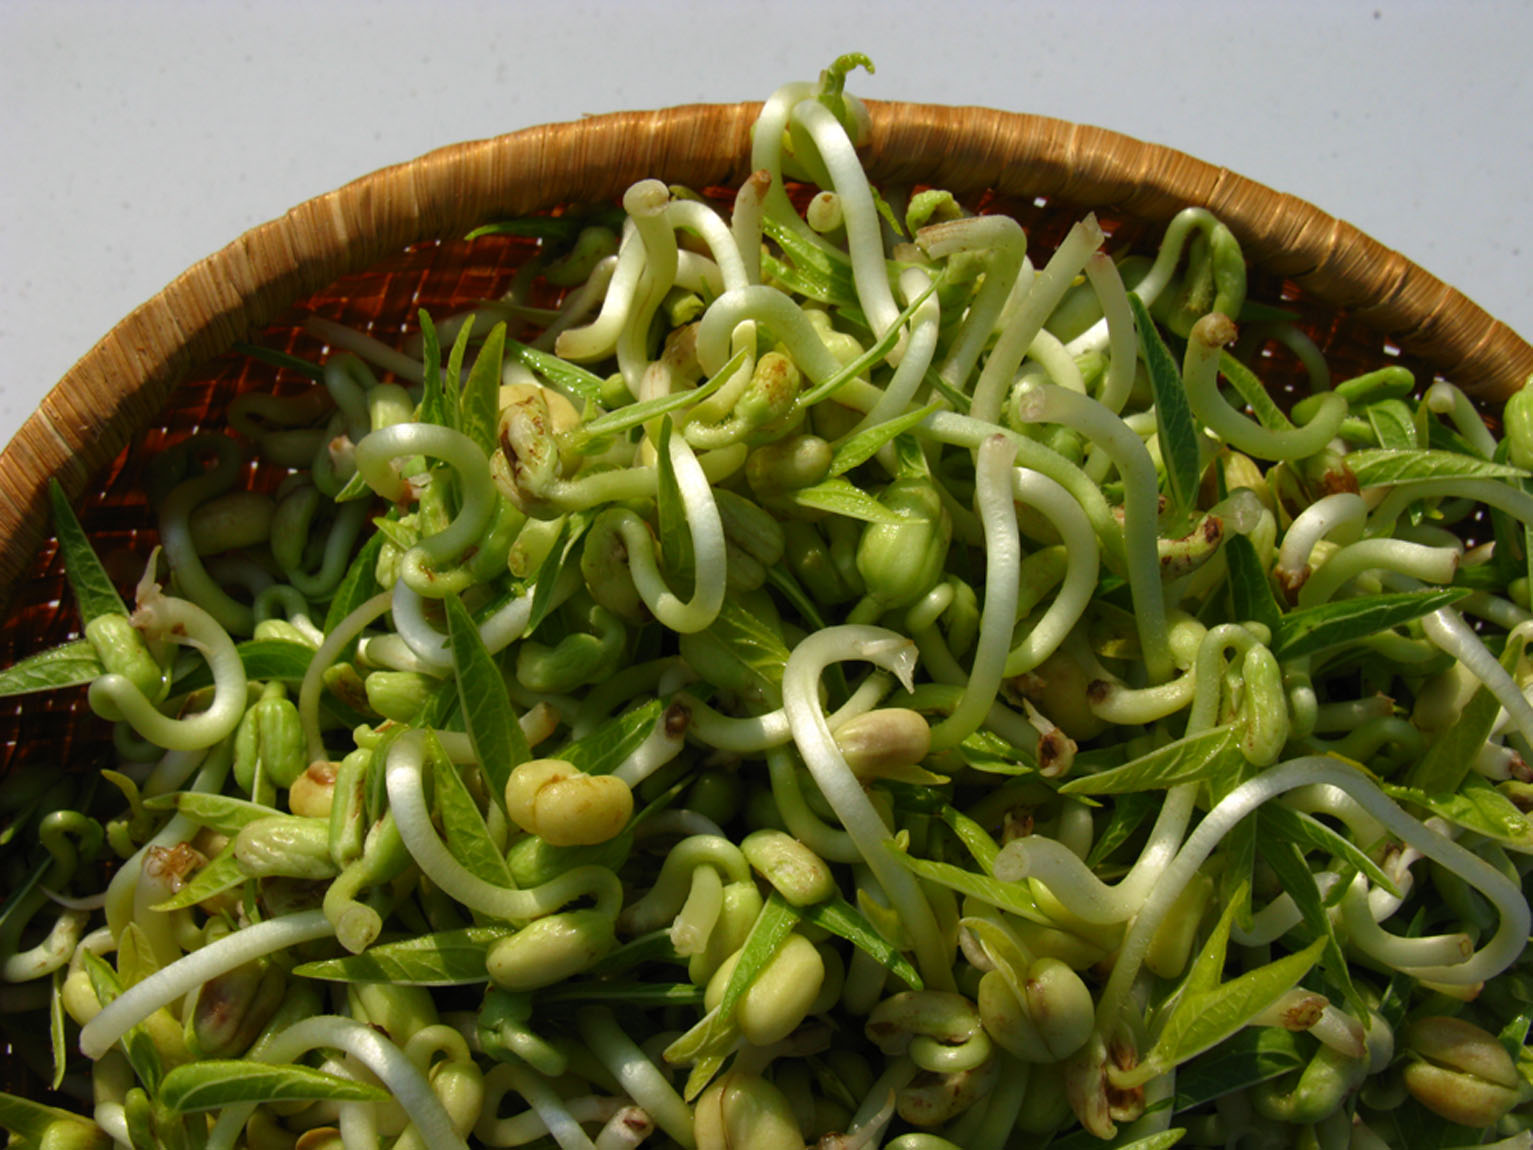 germinated bean sprouts